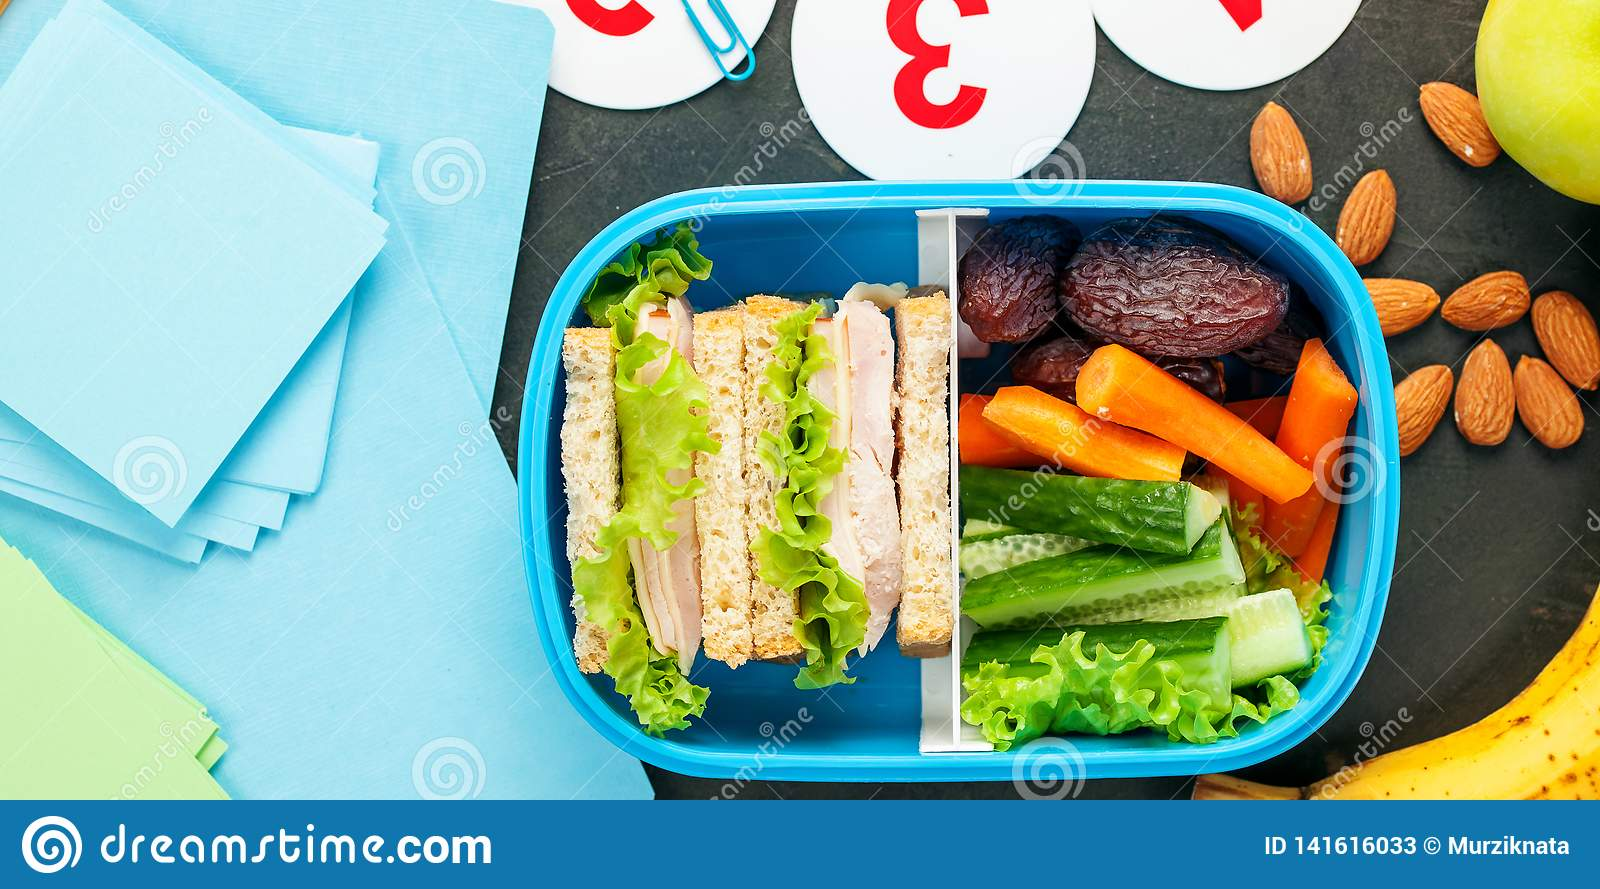 Lunch In A Box Healthy Lunch In A Box Stock Image Image Of Cheese 141616033